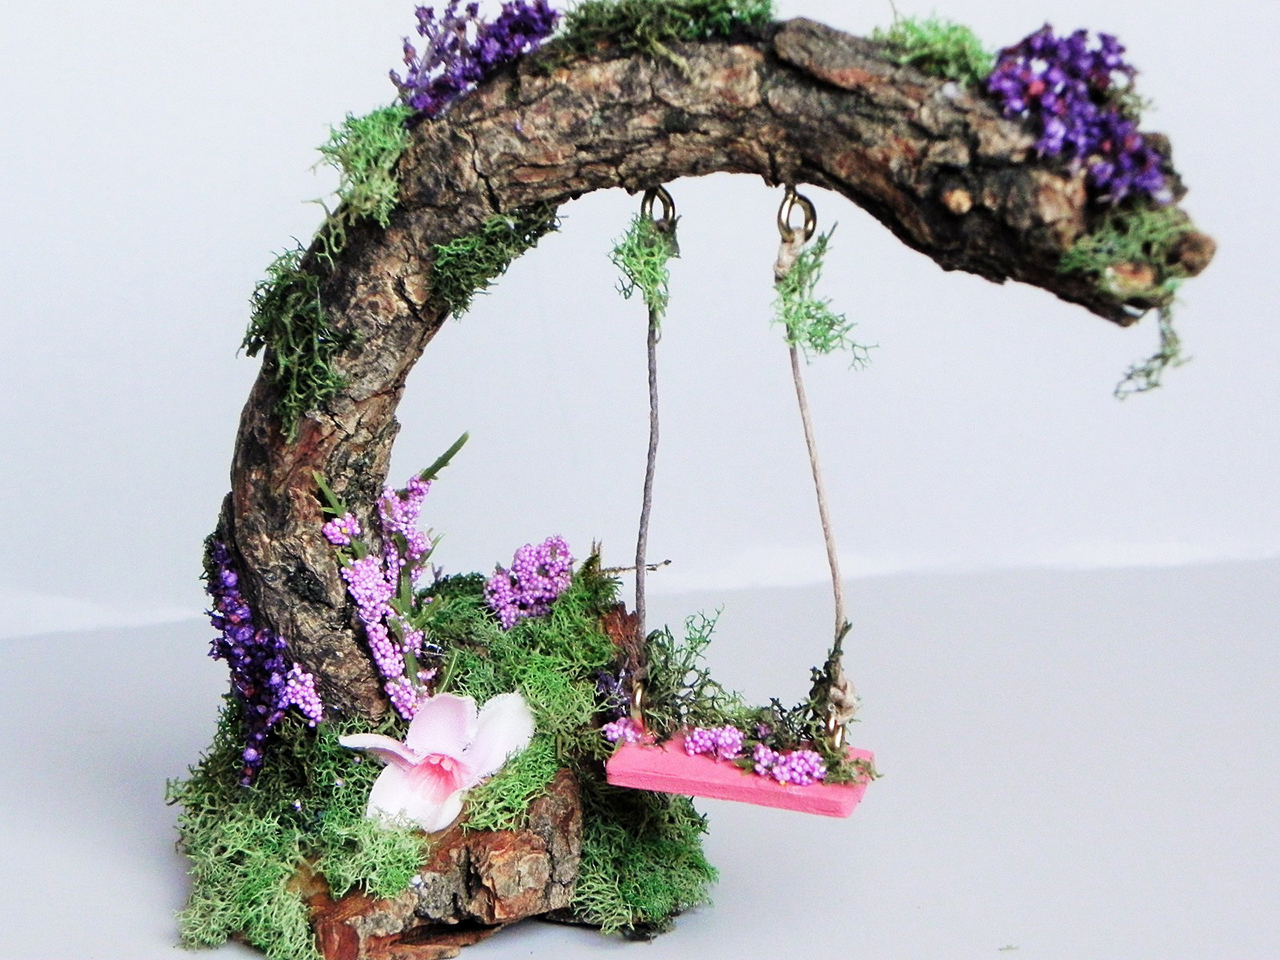 The 50 best diy miniature fairy garden ideas in 2018 Diy home design ideas pictures landscaping